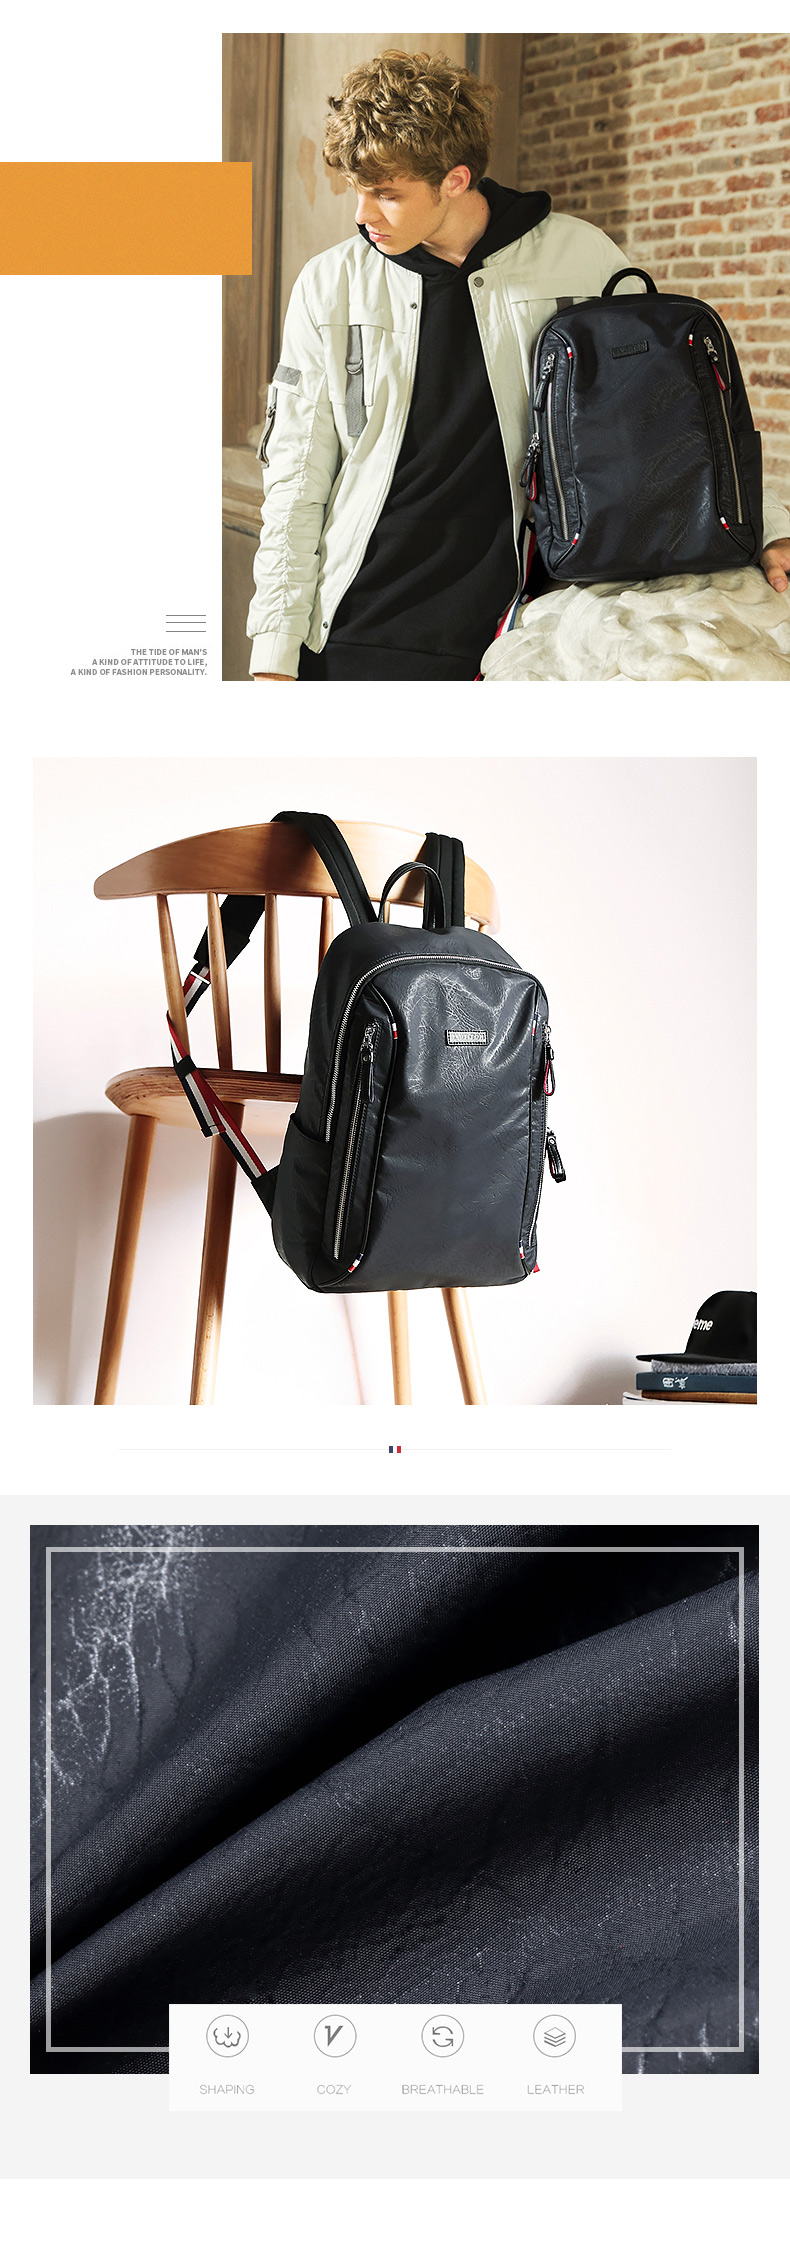 2018 Multi-function Nylon Laptop Bag Backpack School Daypack For Men